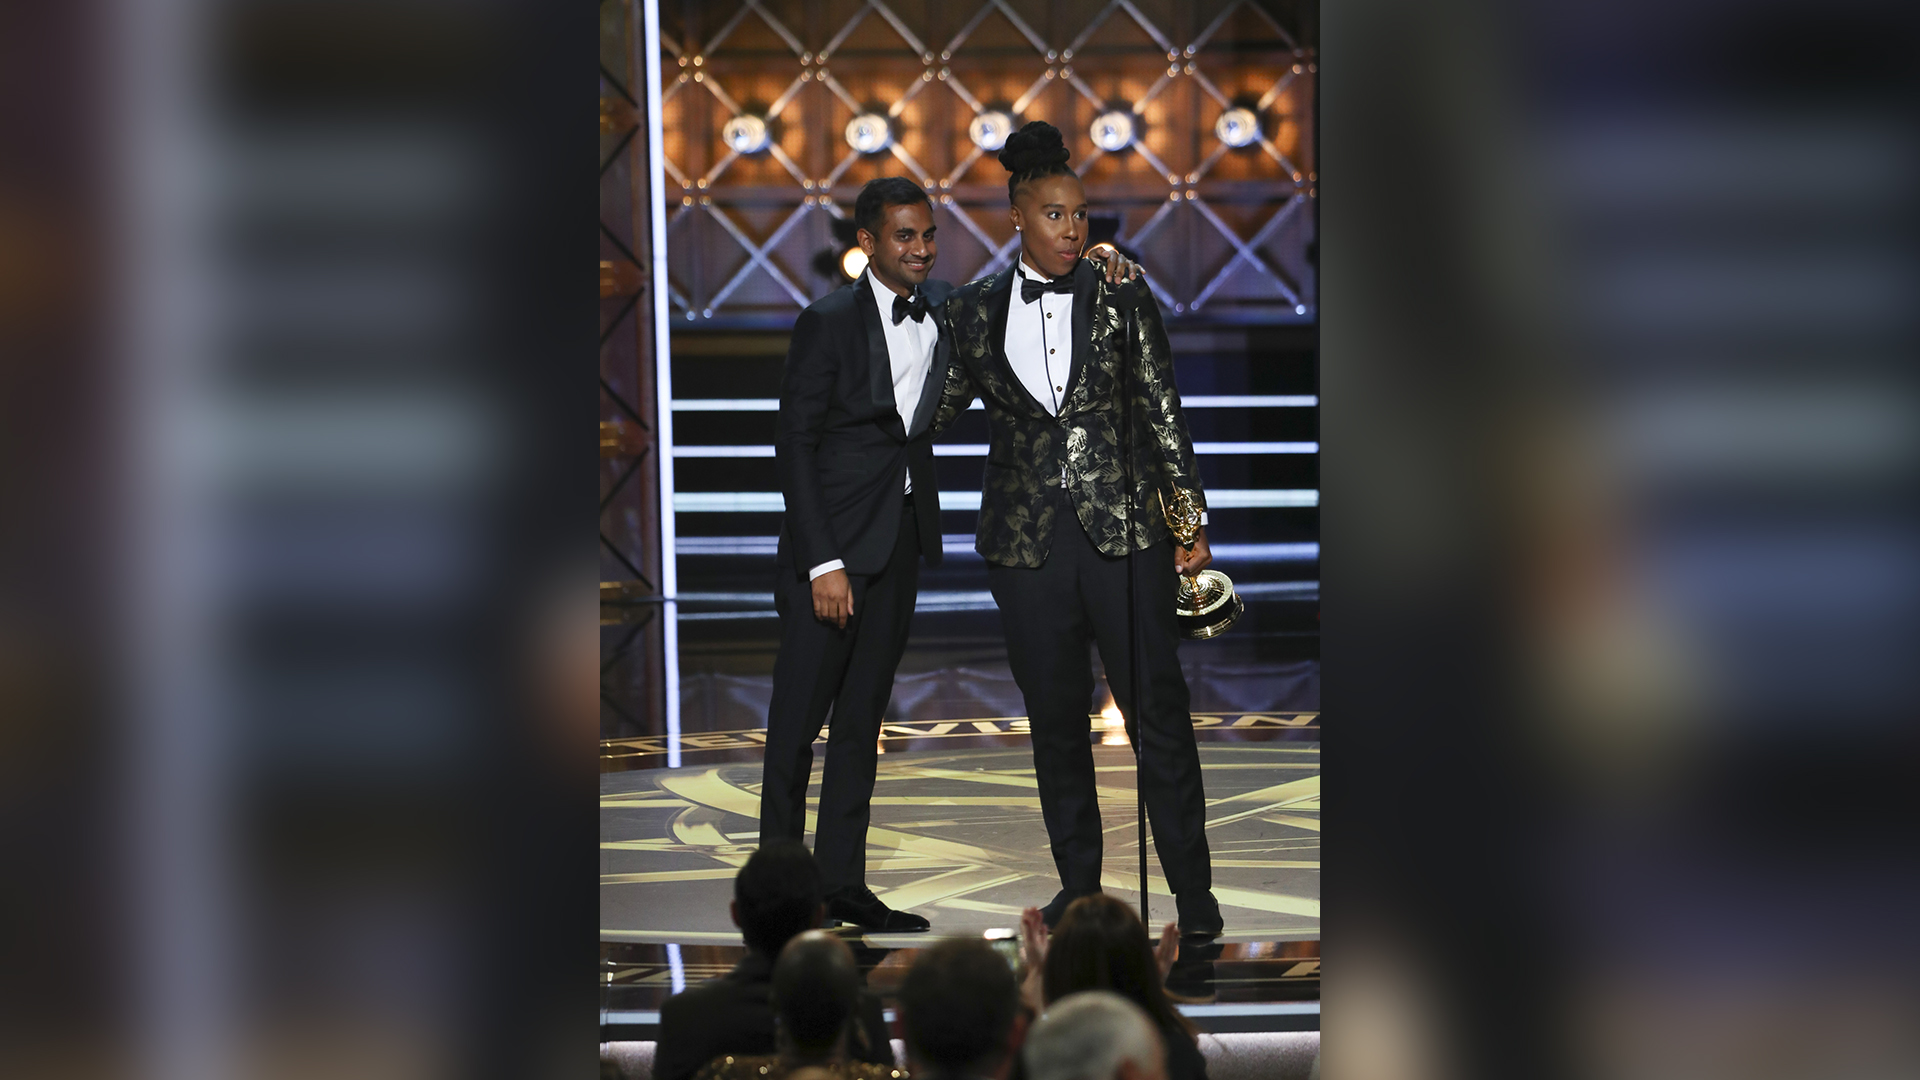 Lena Waithe and Aziz Ansari win Outstanding Writing for a Comedy Series at the 69th Emmy Awards.